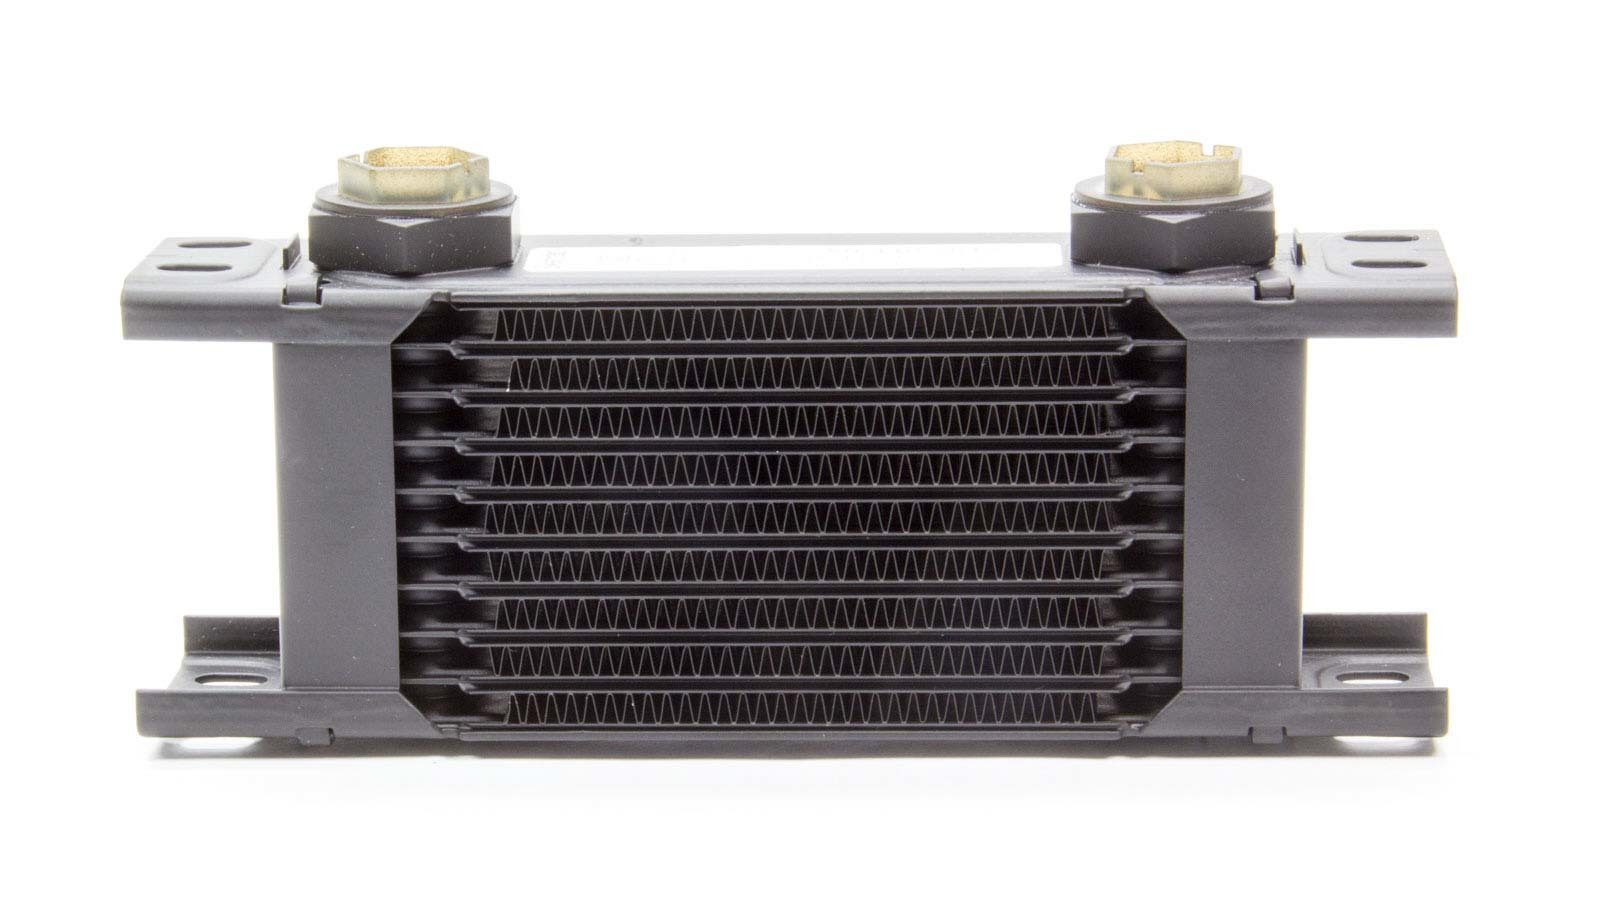 Setrab Oil Coolers 50-110-7612 Fluid Cooler, ProLine STD 1 Series, 8-17/64 x 3-11/32 x 2 in, Plate Type, 22 mm x 1.50 Female Inlet, 22 mm x 1.50 Female Outlet, Aluminum, Black Paint, Universal, Each